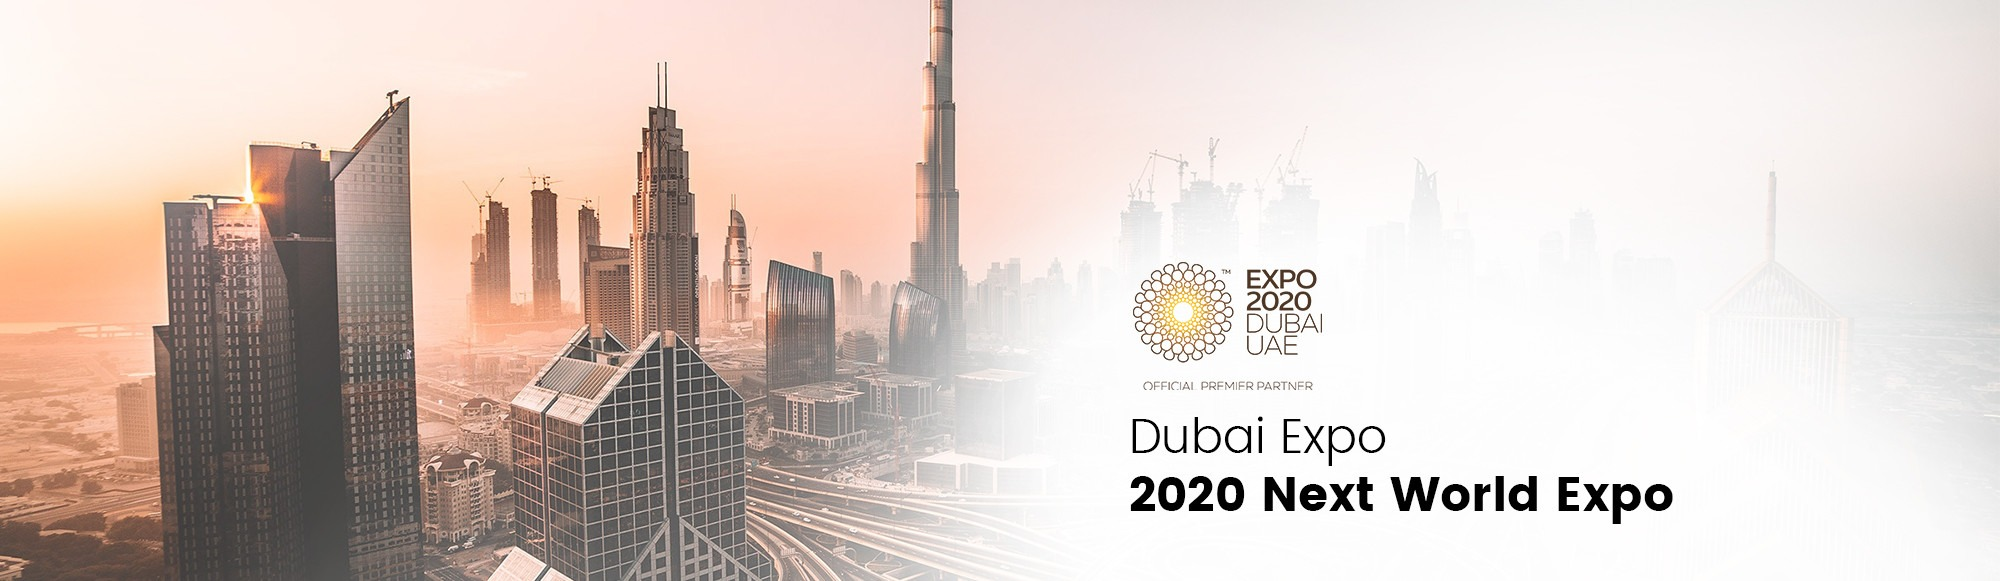 Dubai expo 2020 next world expo